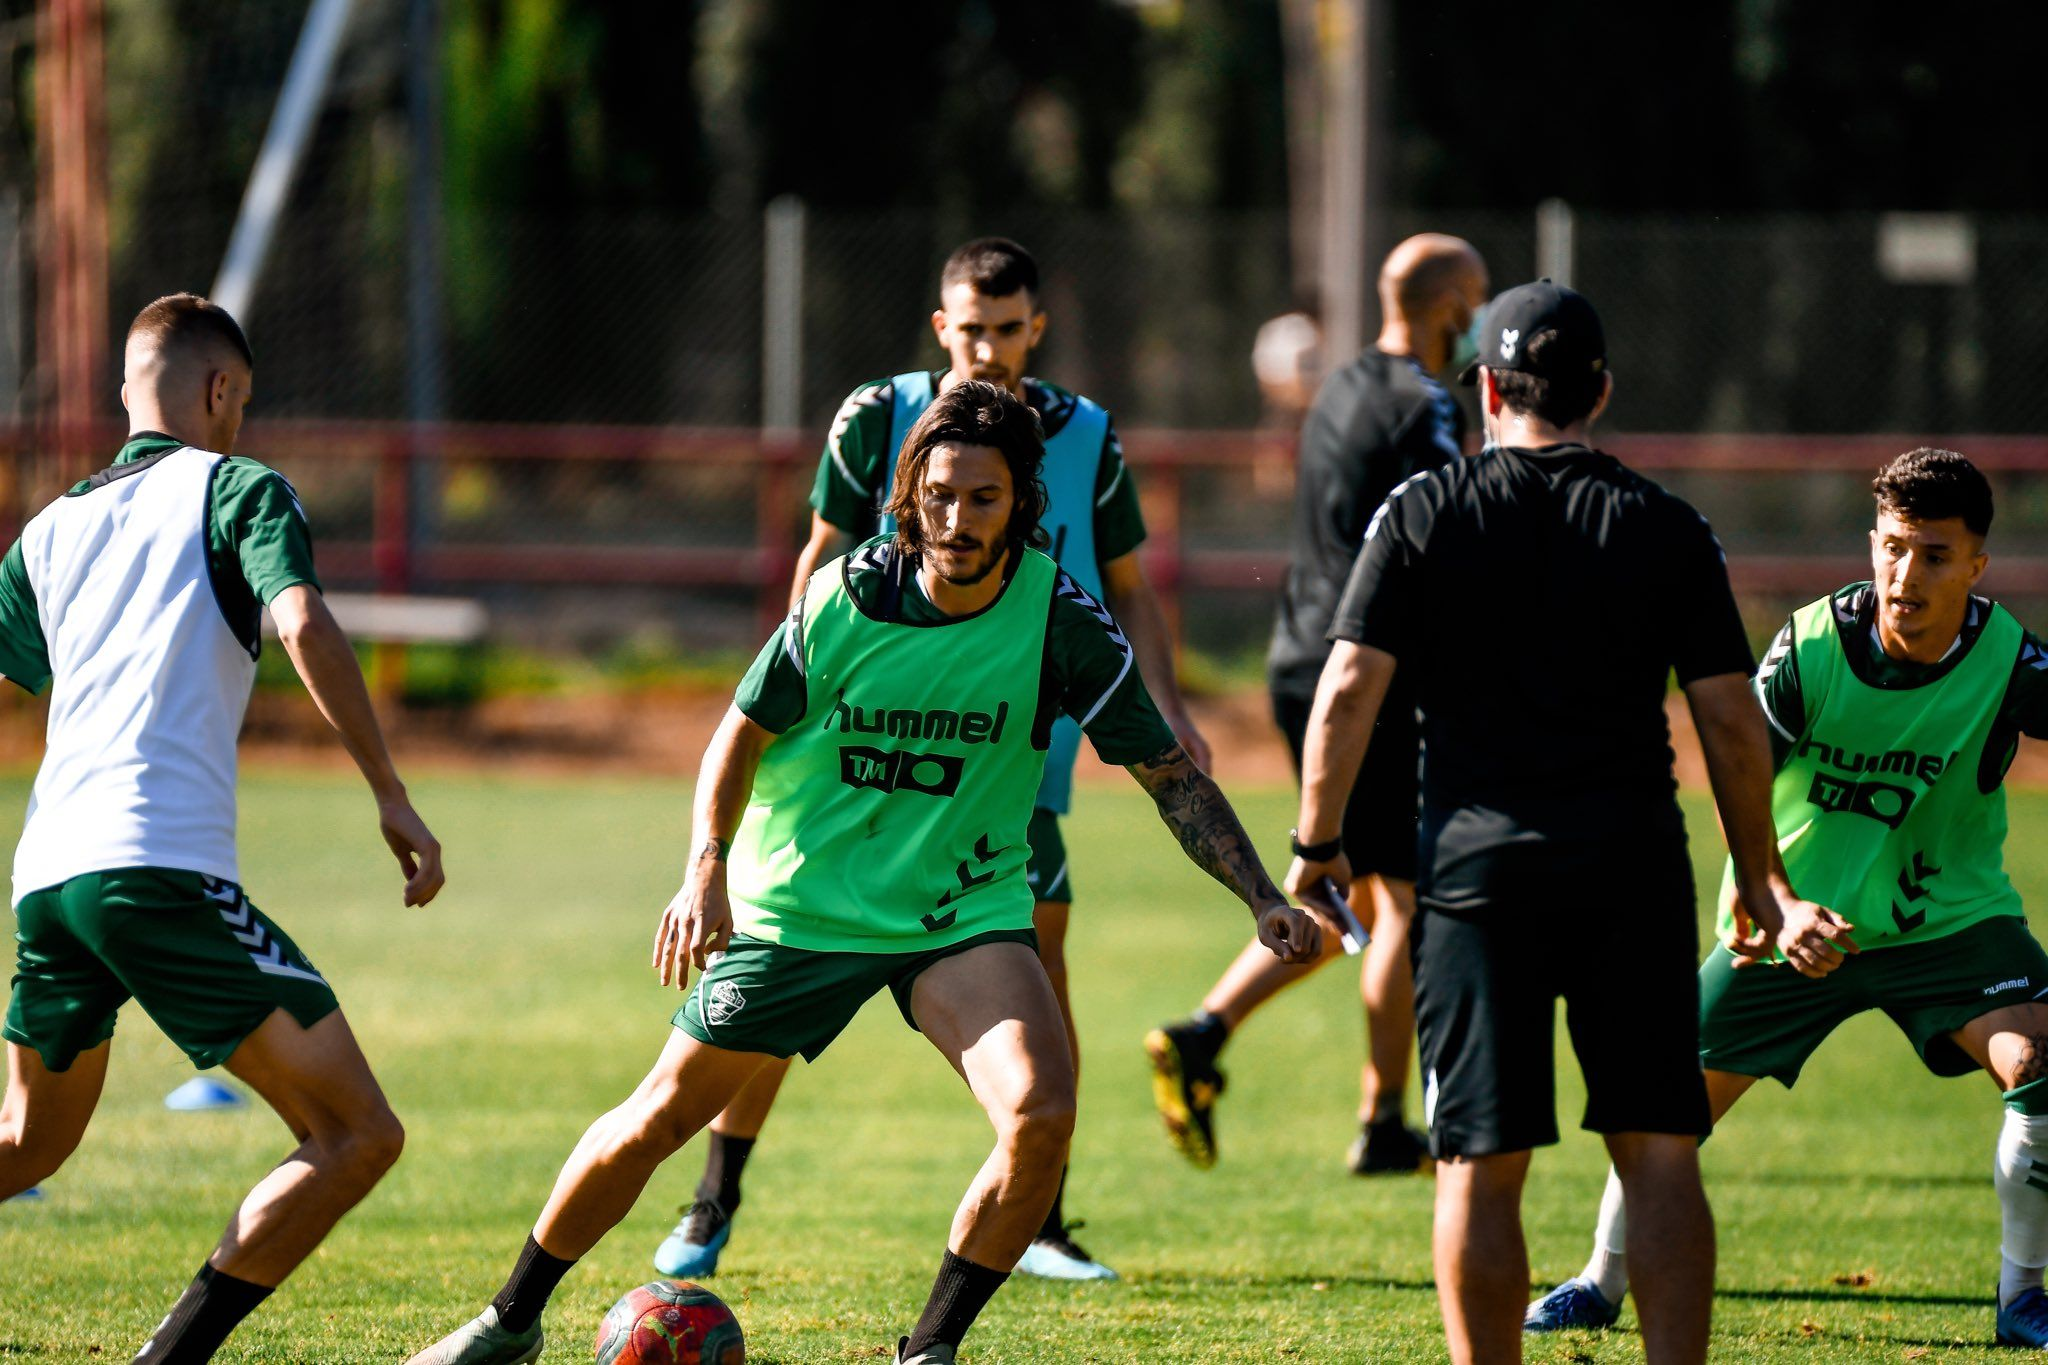 Elche to play most of their games at night The Leader